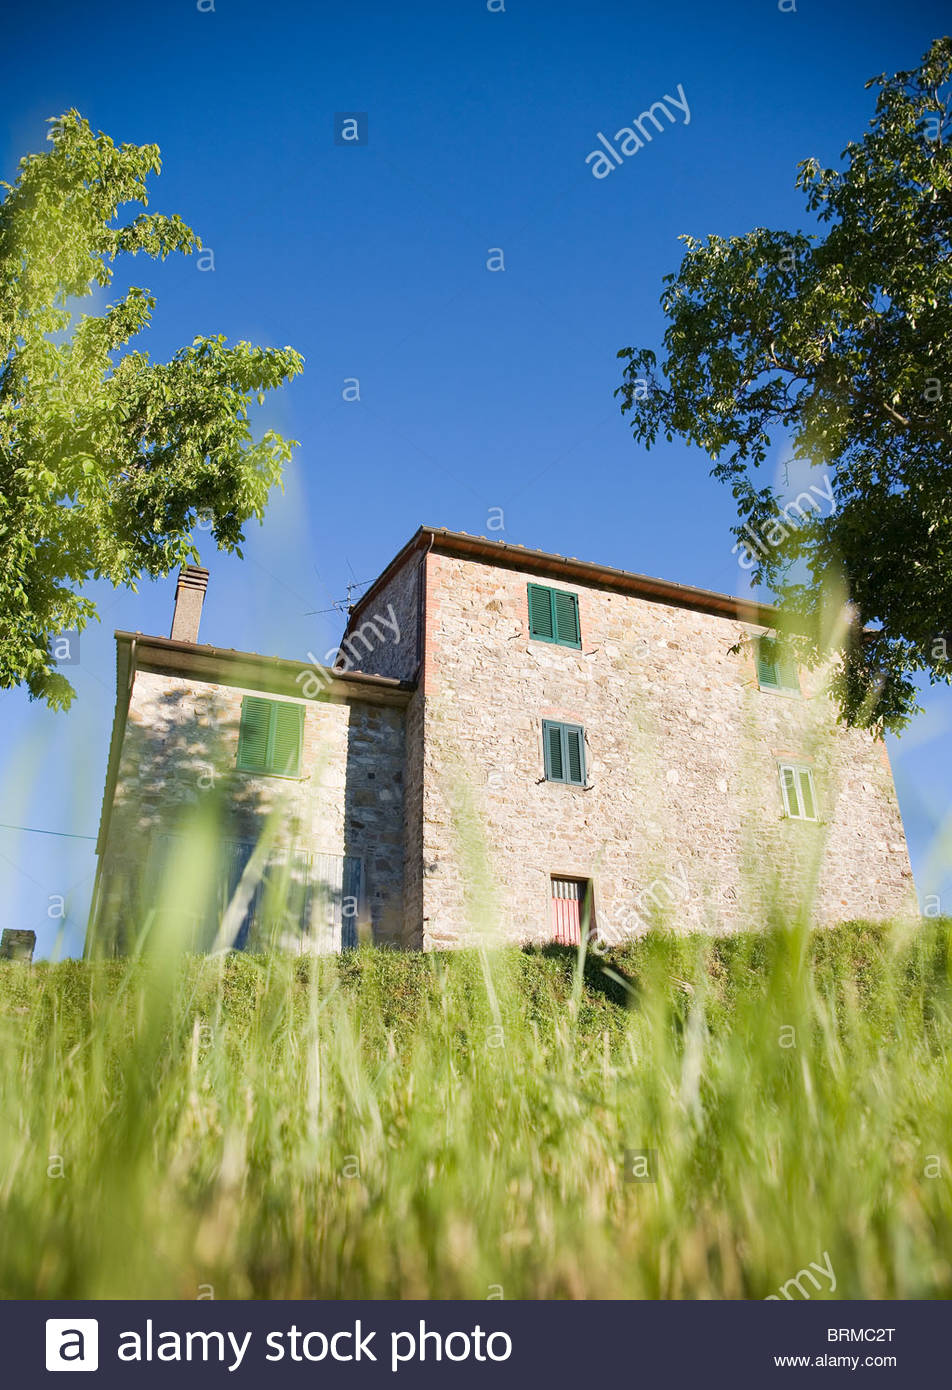 Farm building in countryside, Italy - Stock Image